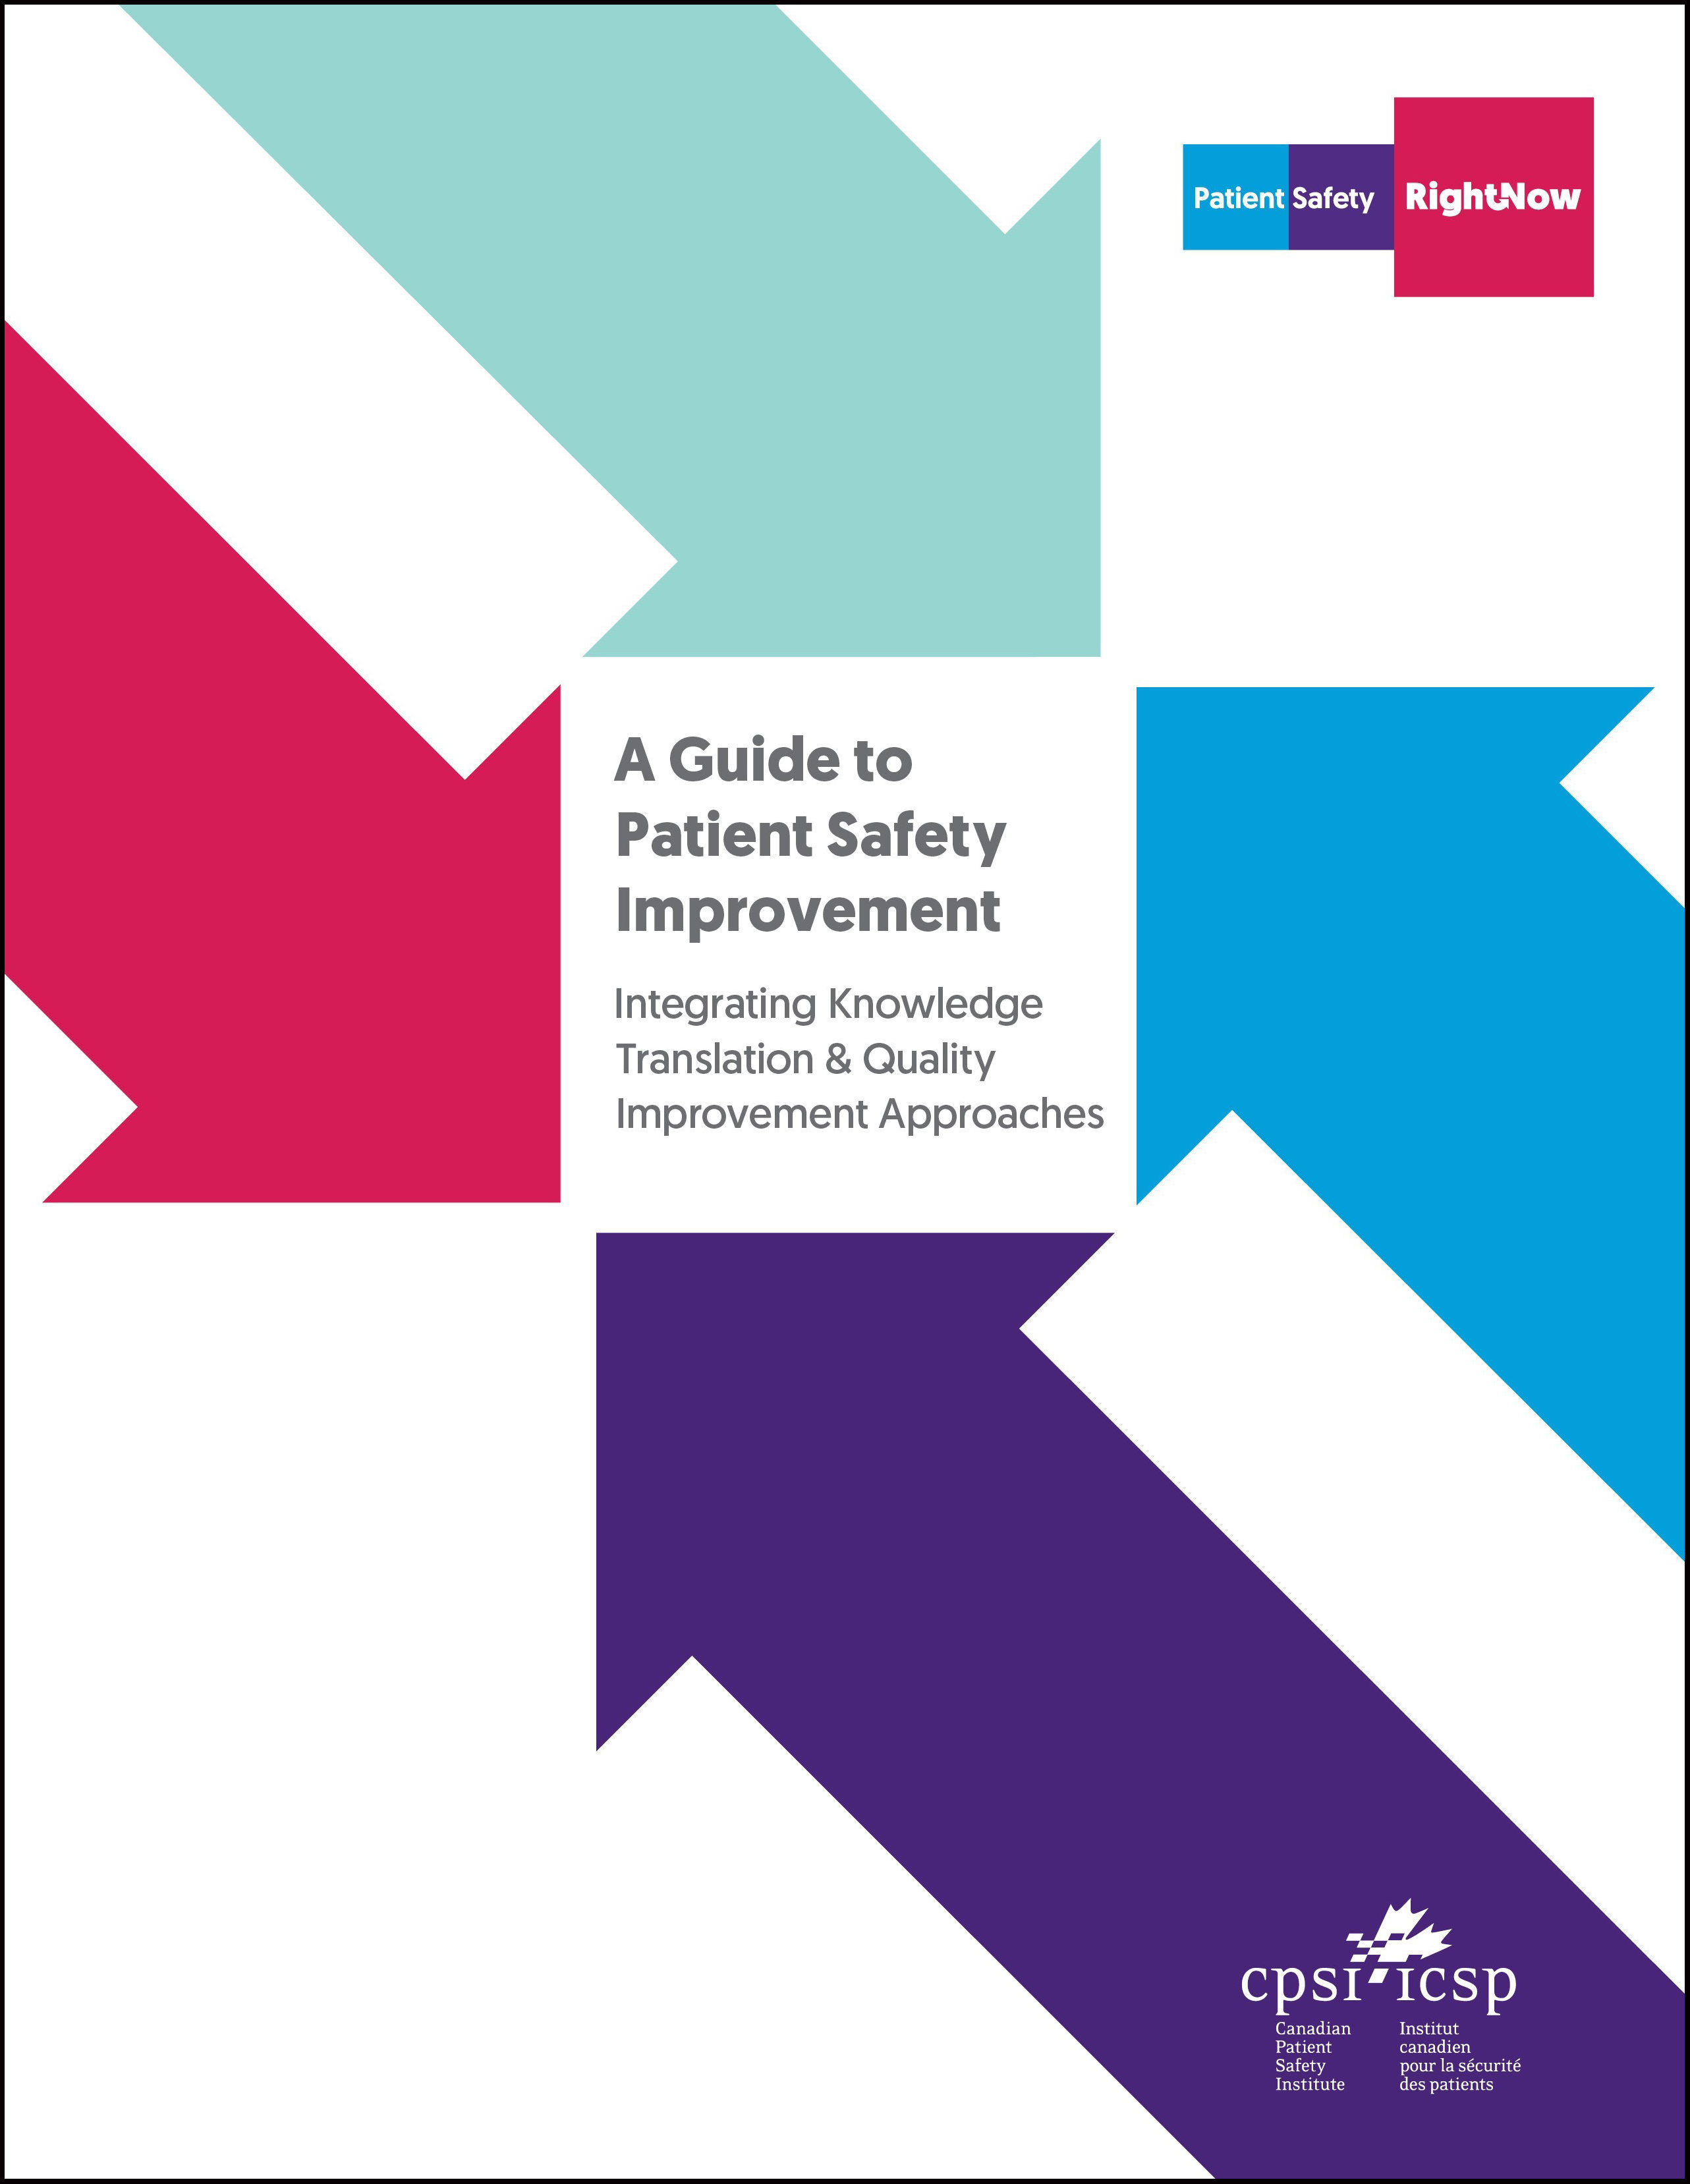 A Guide to Patient Safety Improvement - Integrating Knowledge Translation & Quality Improvement Approaches